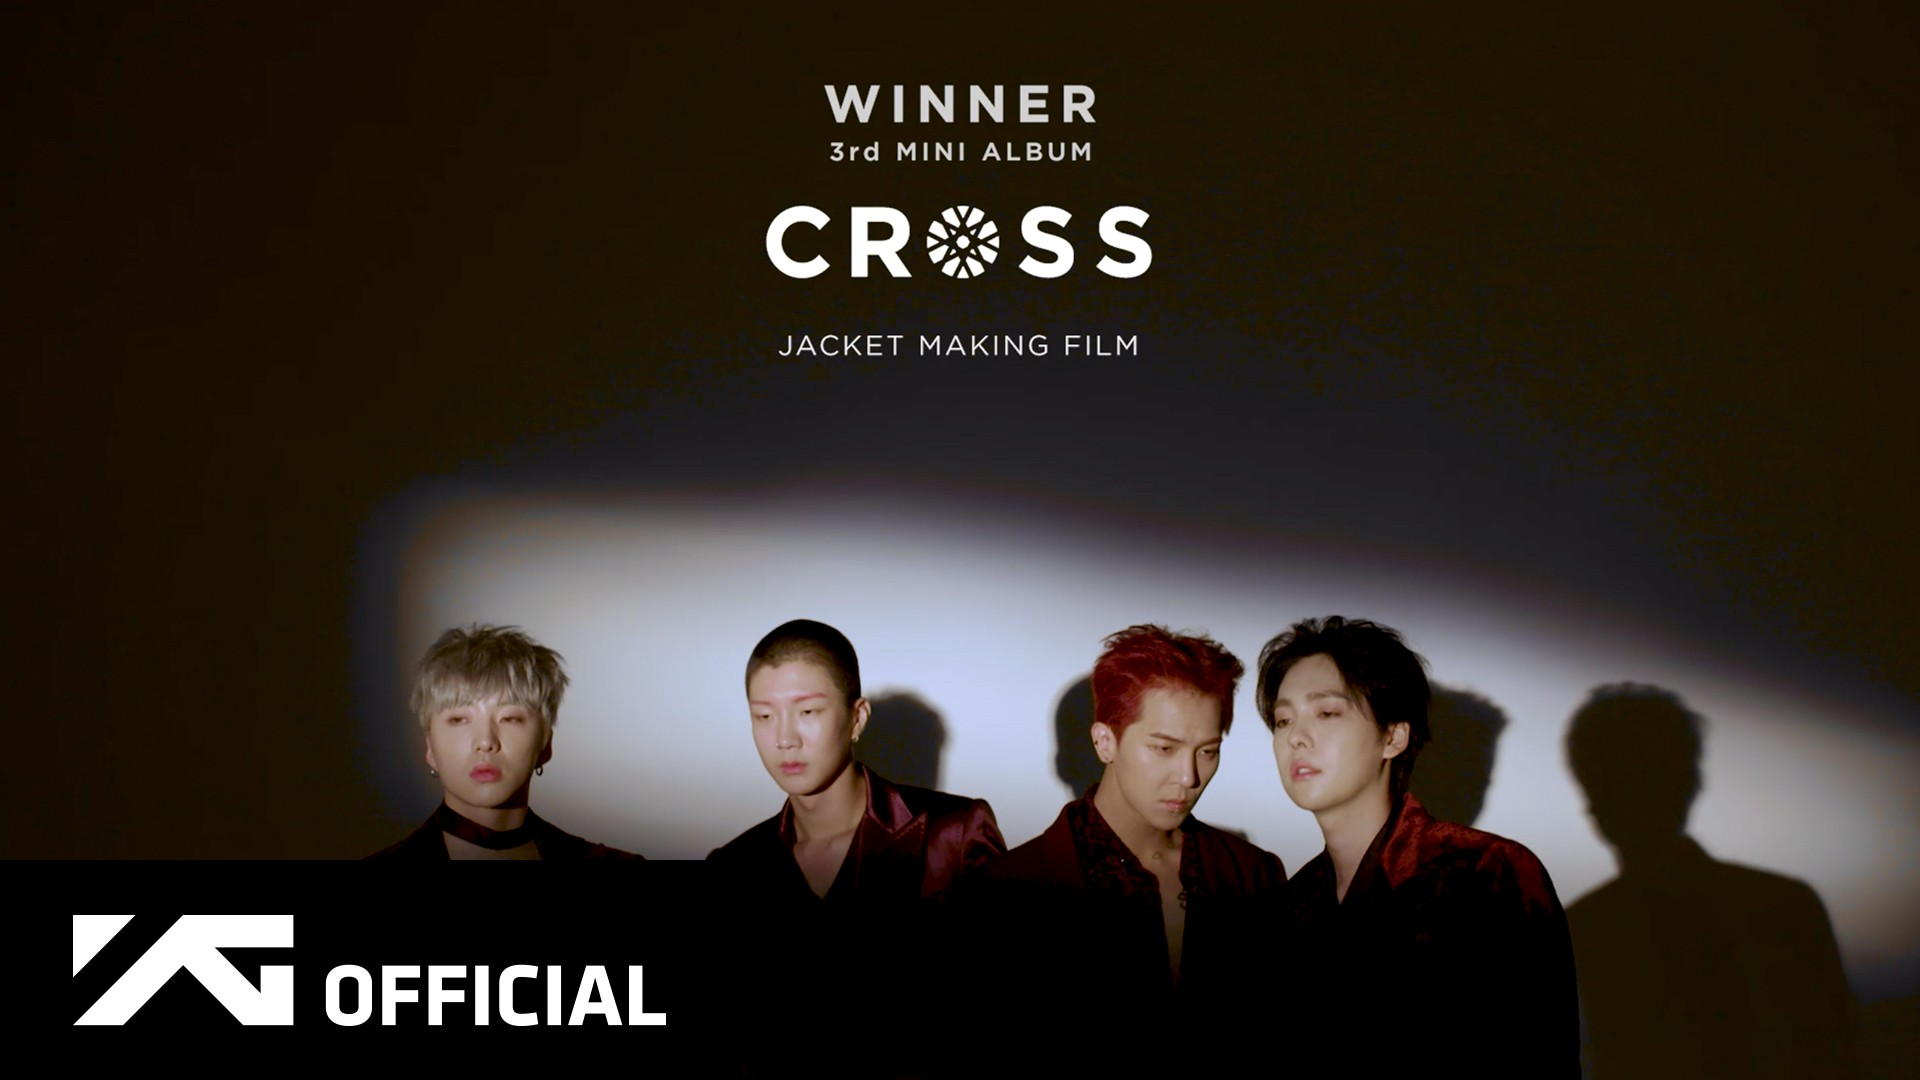 WINNER - 3rd MINI ALBUM 'CROSS' JACKET MAKING FILM